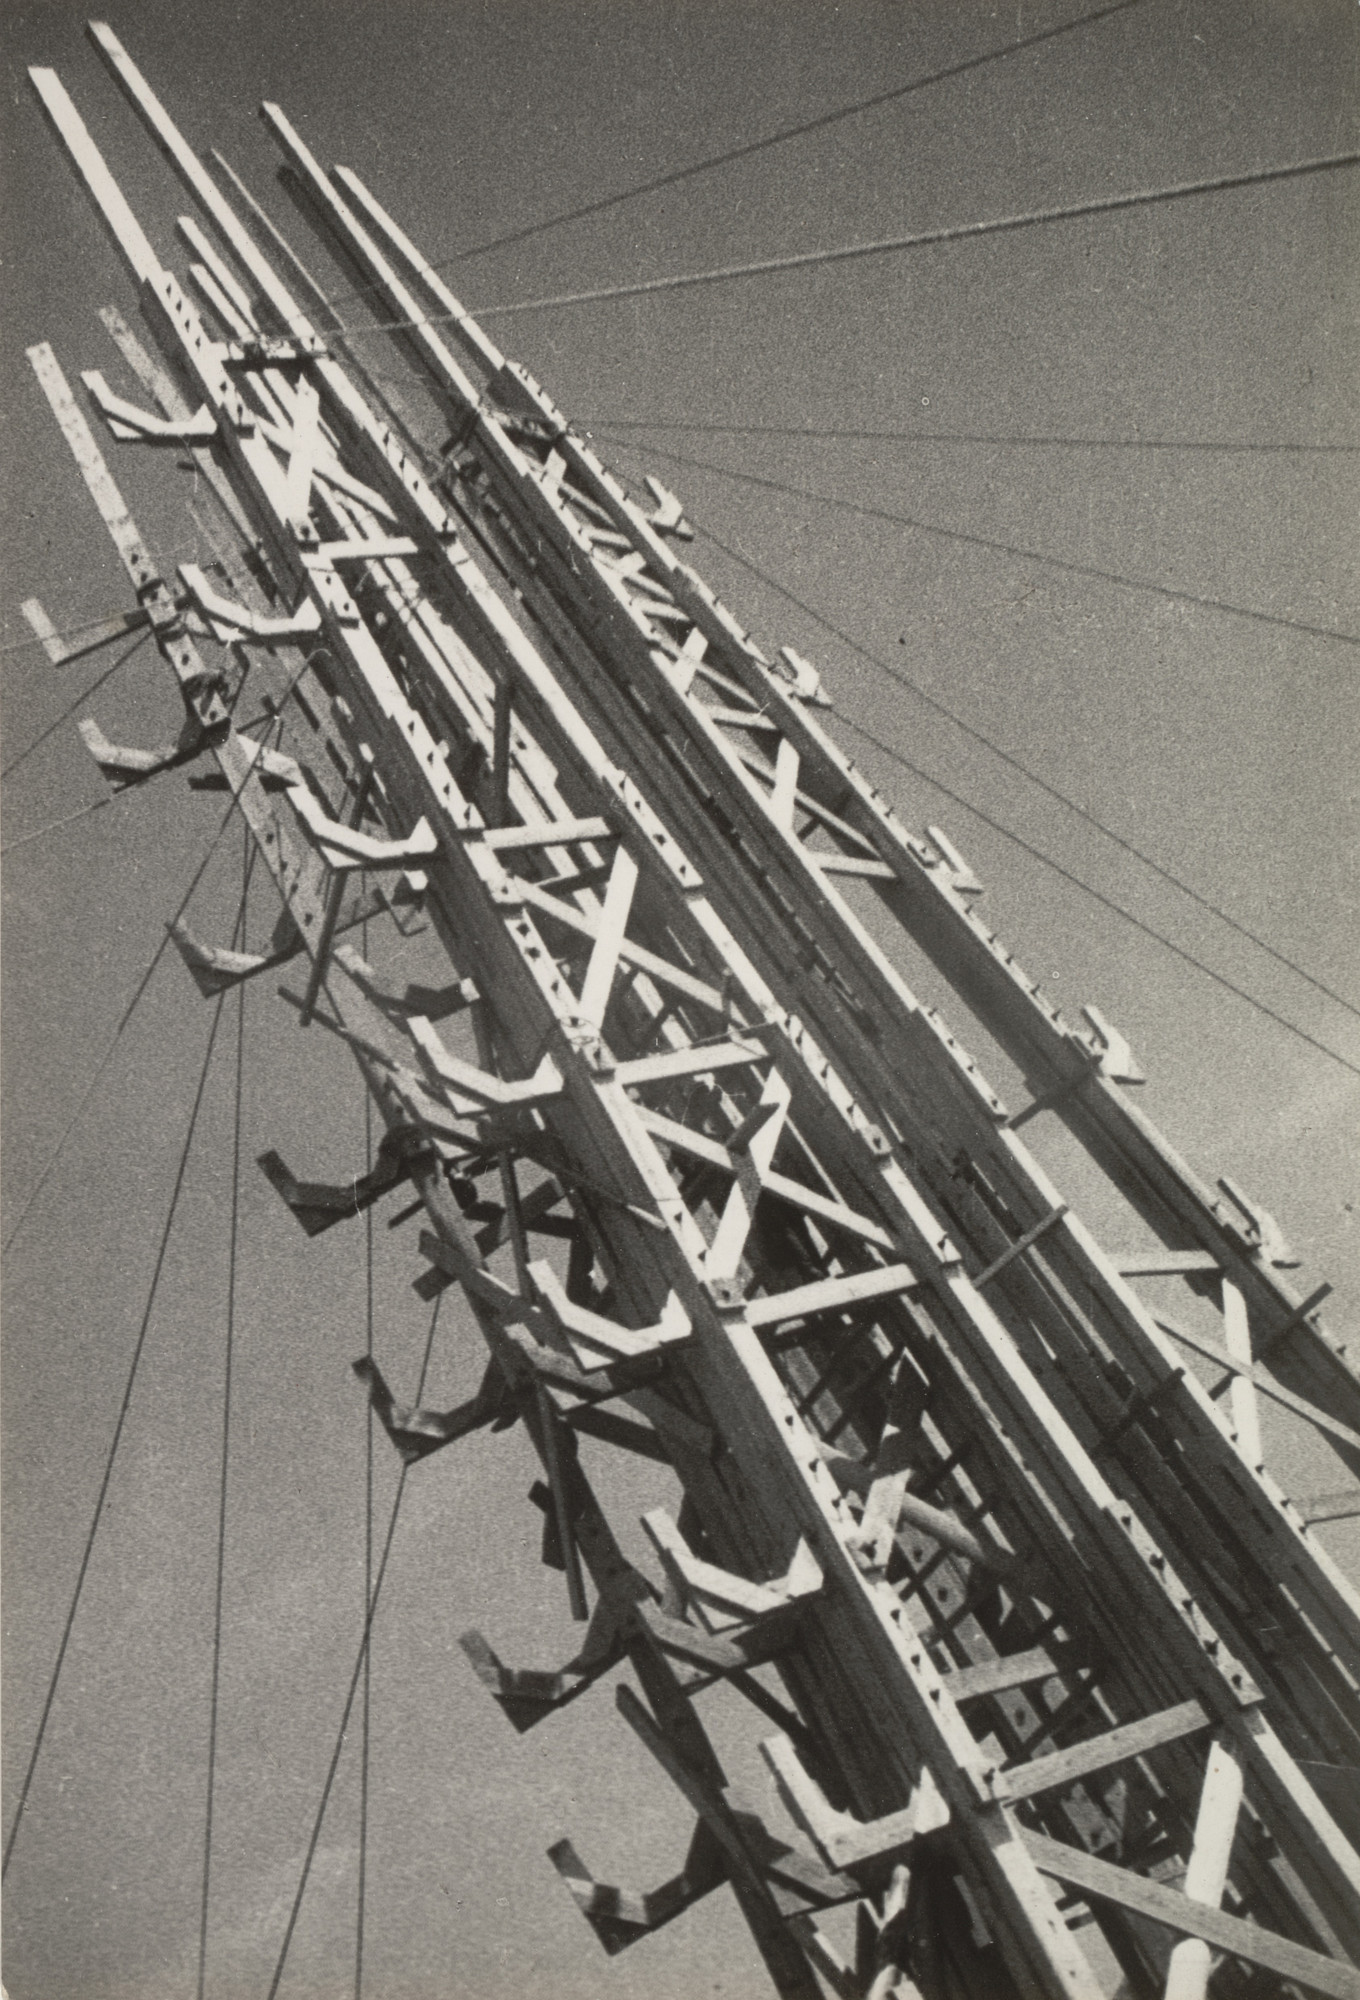 Aleksandr Rodchenko. Park of Culture and Rest. 1929-32